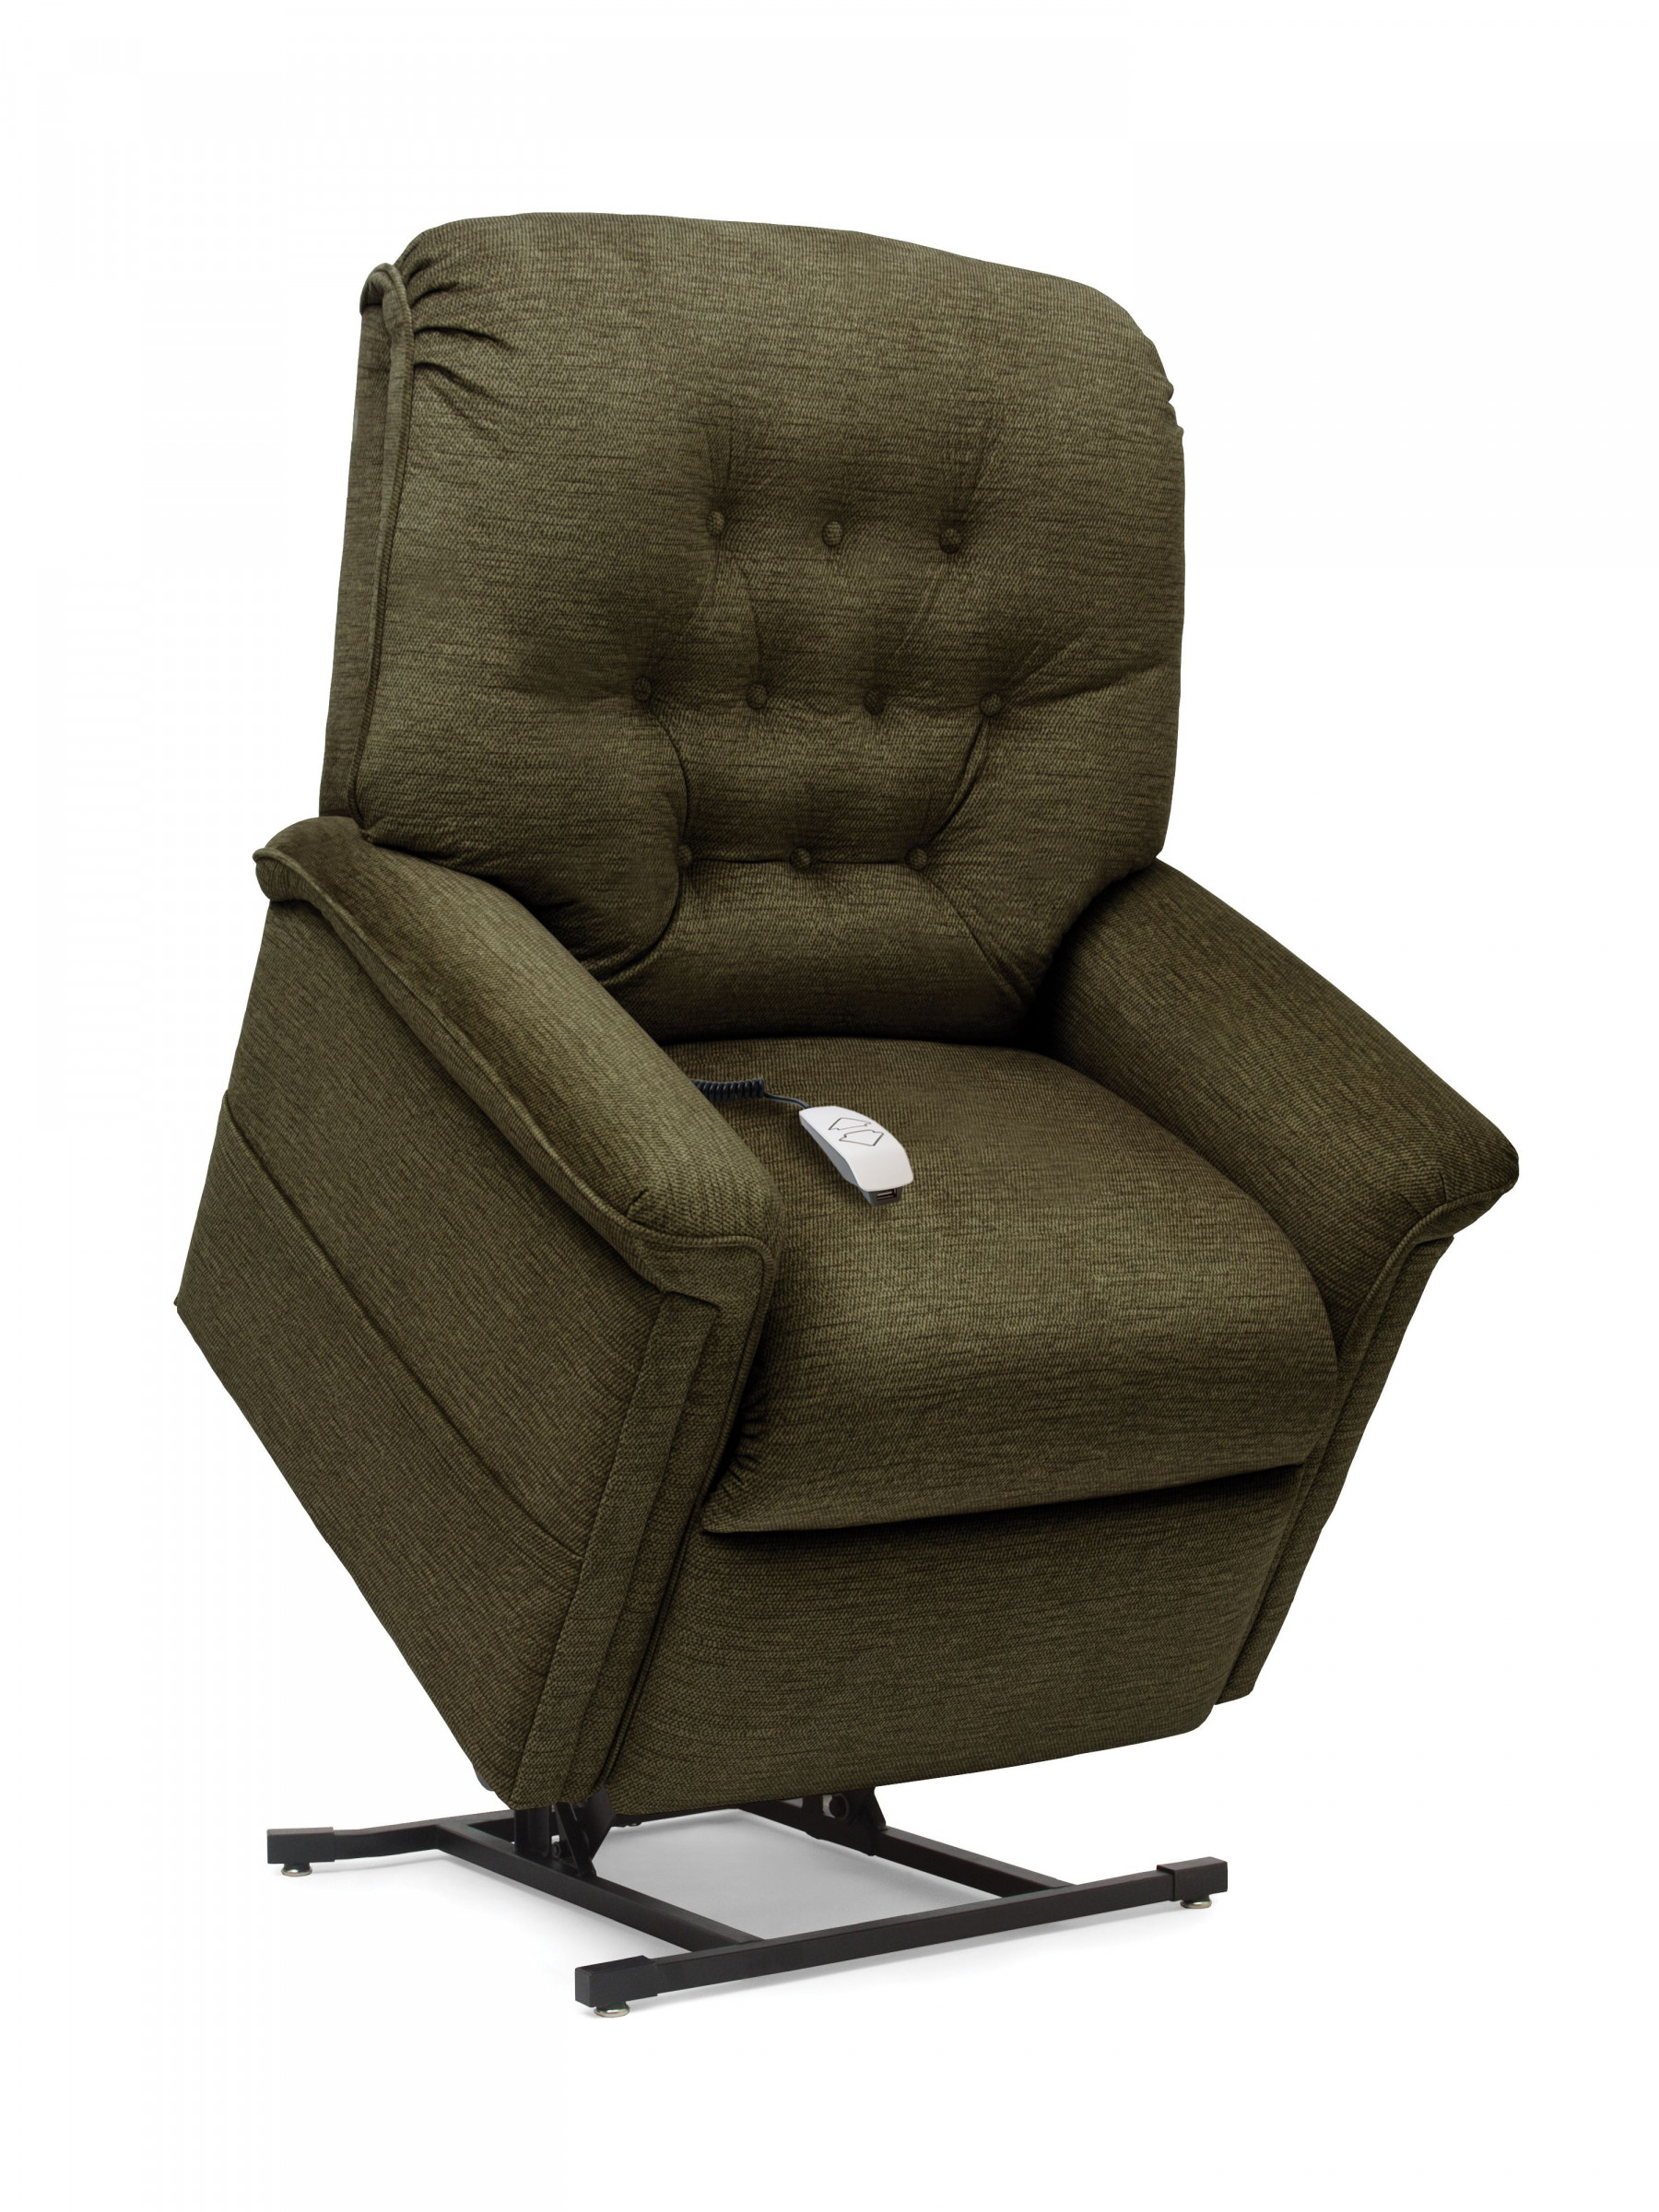 Pride Serenity SR 358 Lift Chair Best Price line Sales Direct